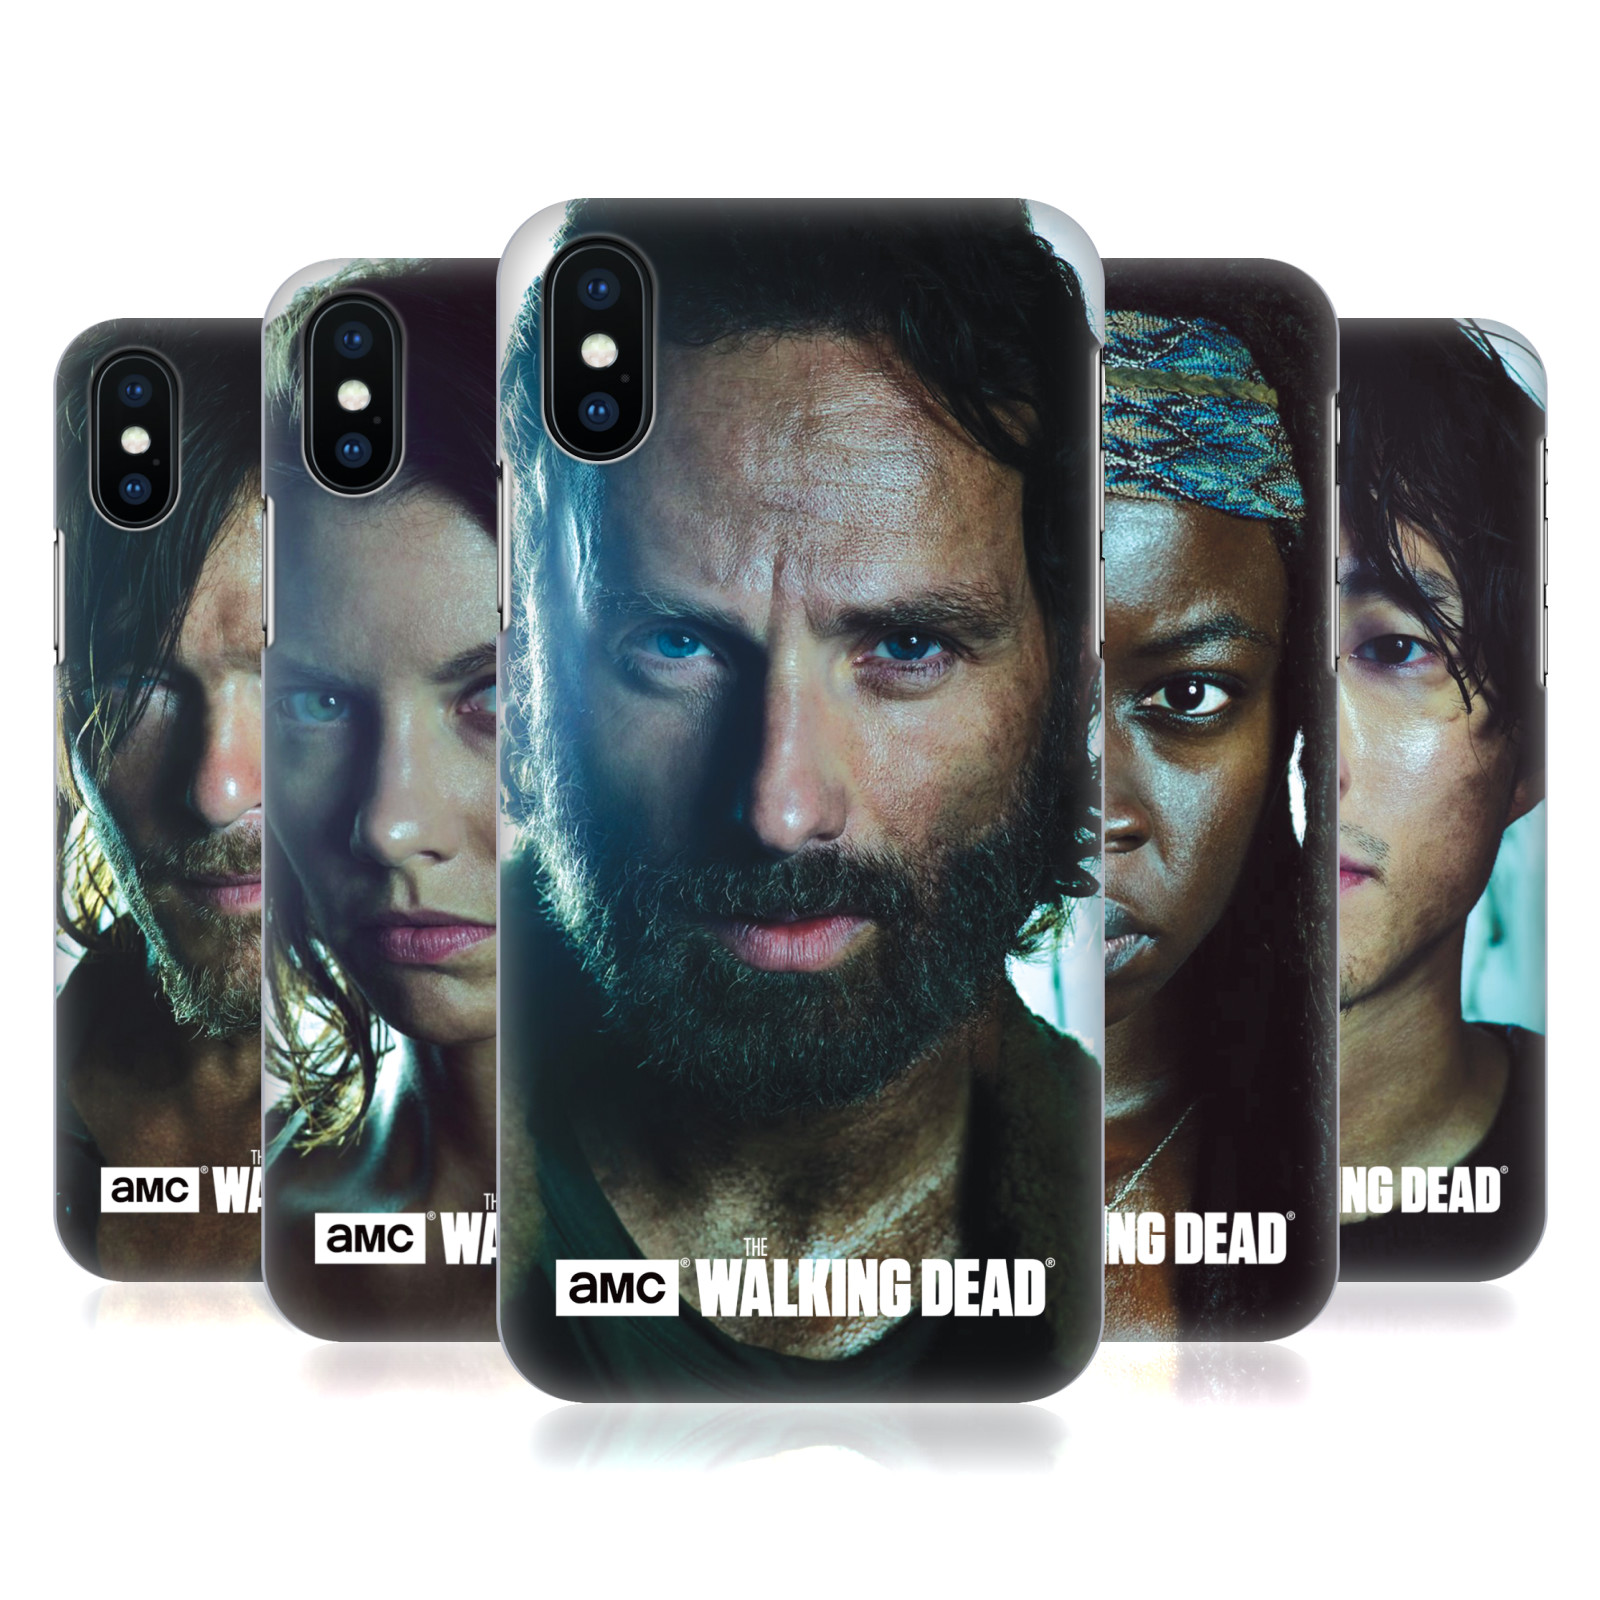 AMC The Walking Dead Characters